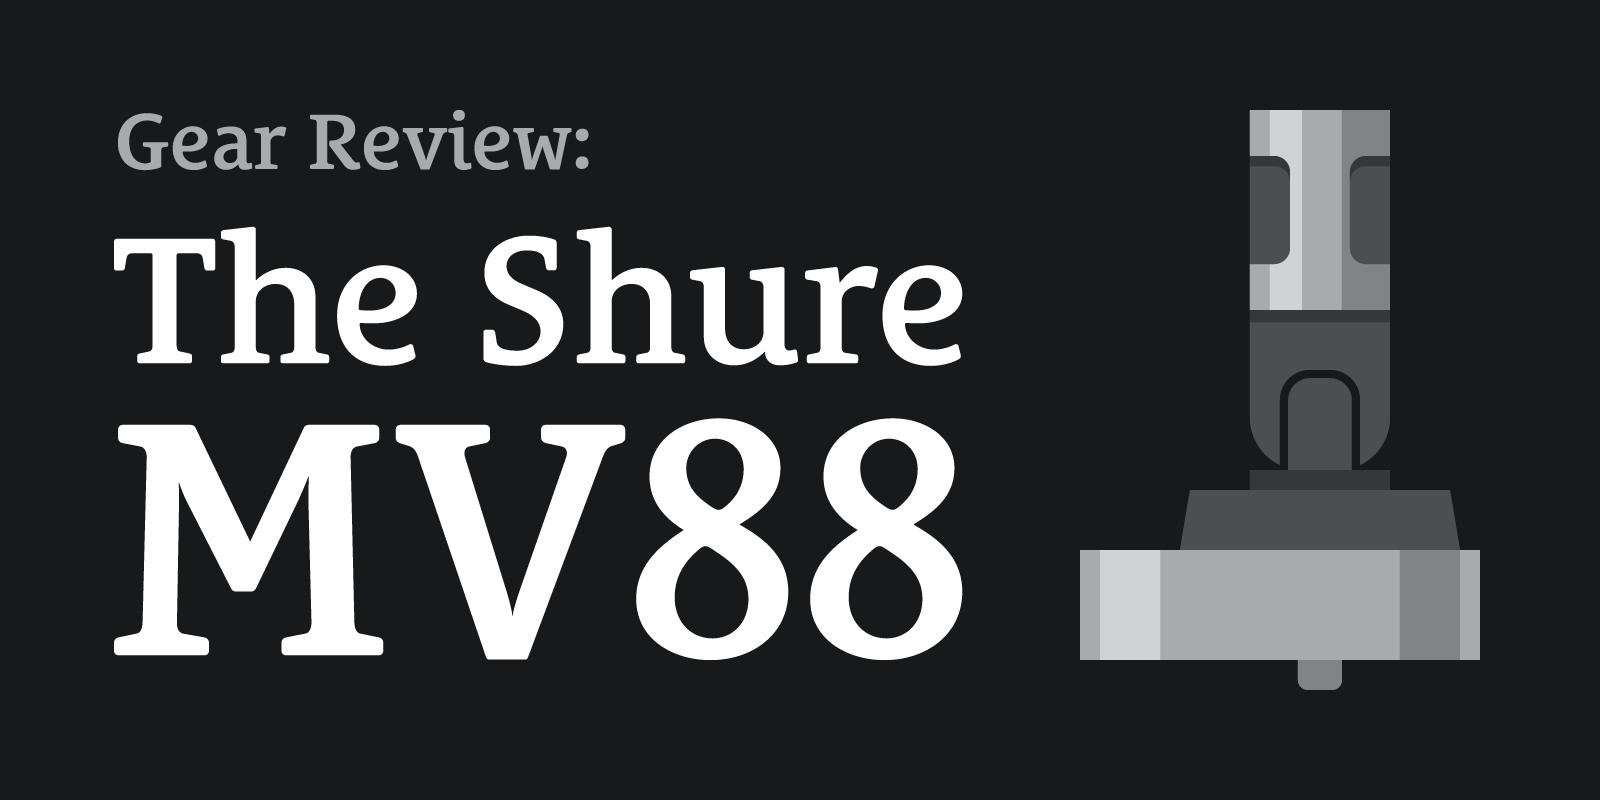 The Podcast Dude 46: Podcasting With the Shure MV88 (Gear Review With Special Guest Cory Miller)